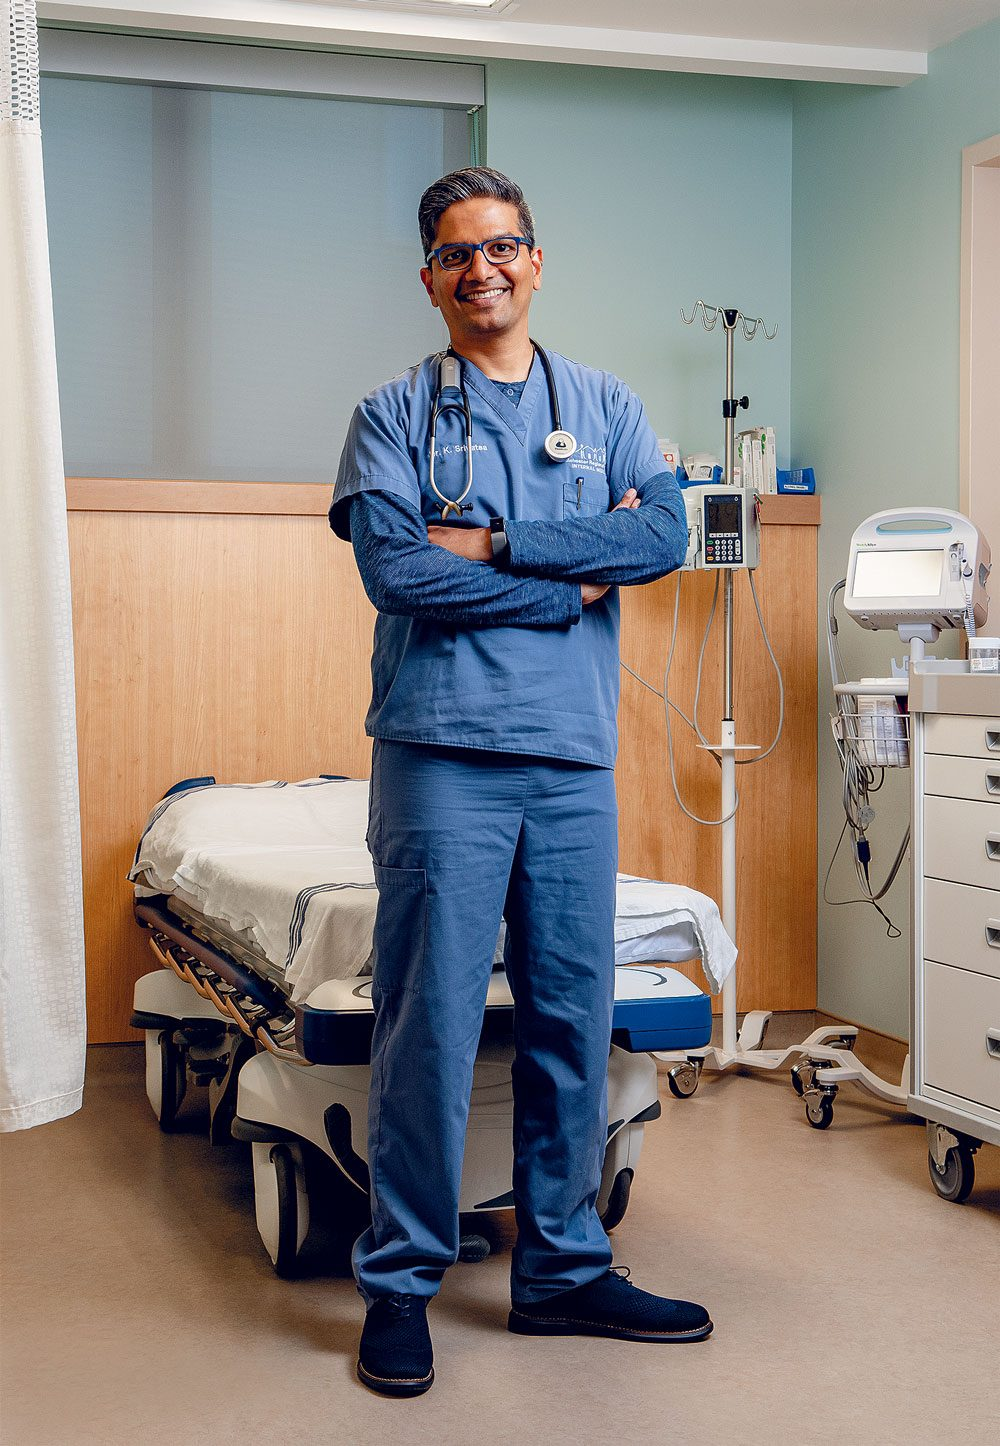 Dr. Kris Srivatsa standing in a hospital room.